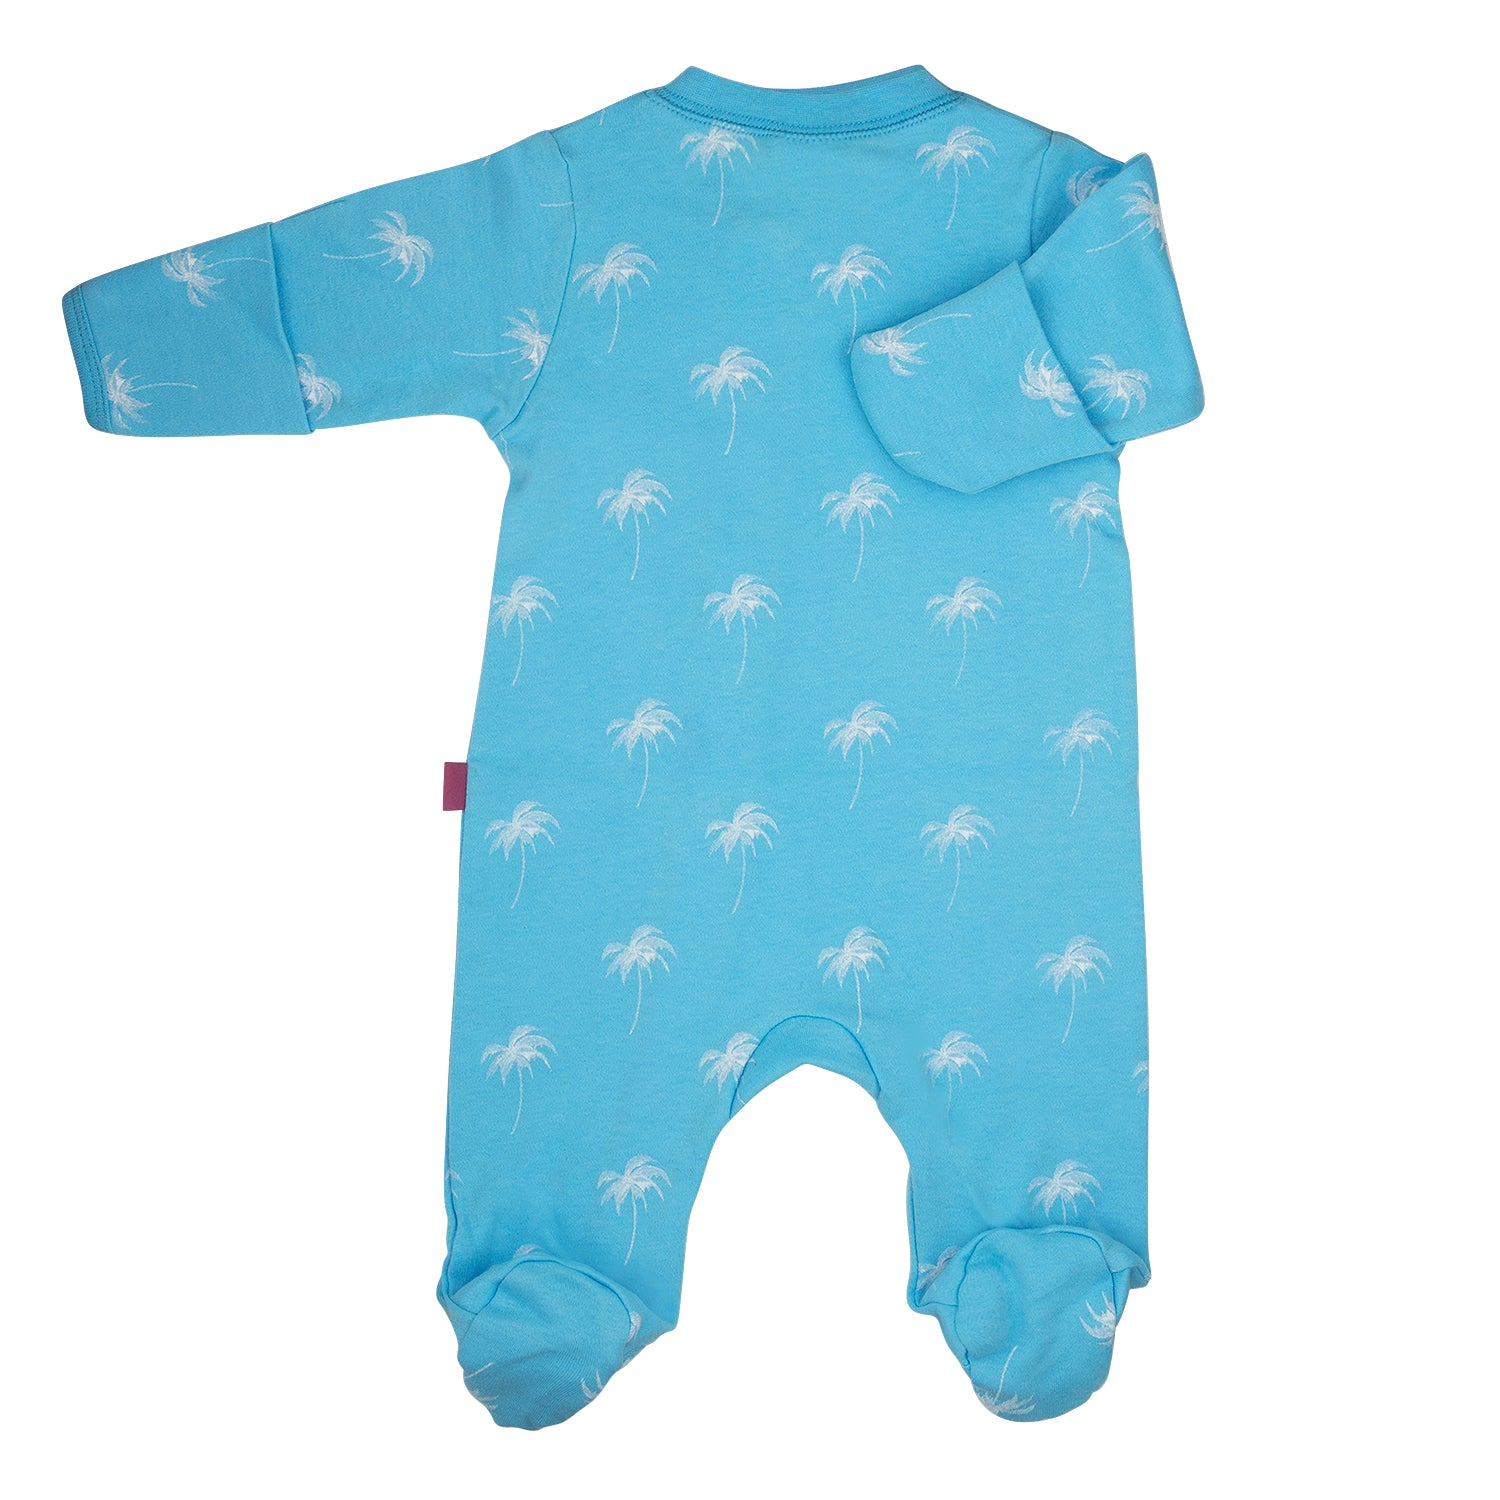 back side of a 100% cotton blue footed and mitted sleepsuit with white palm print